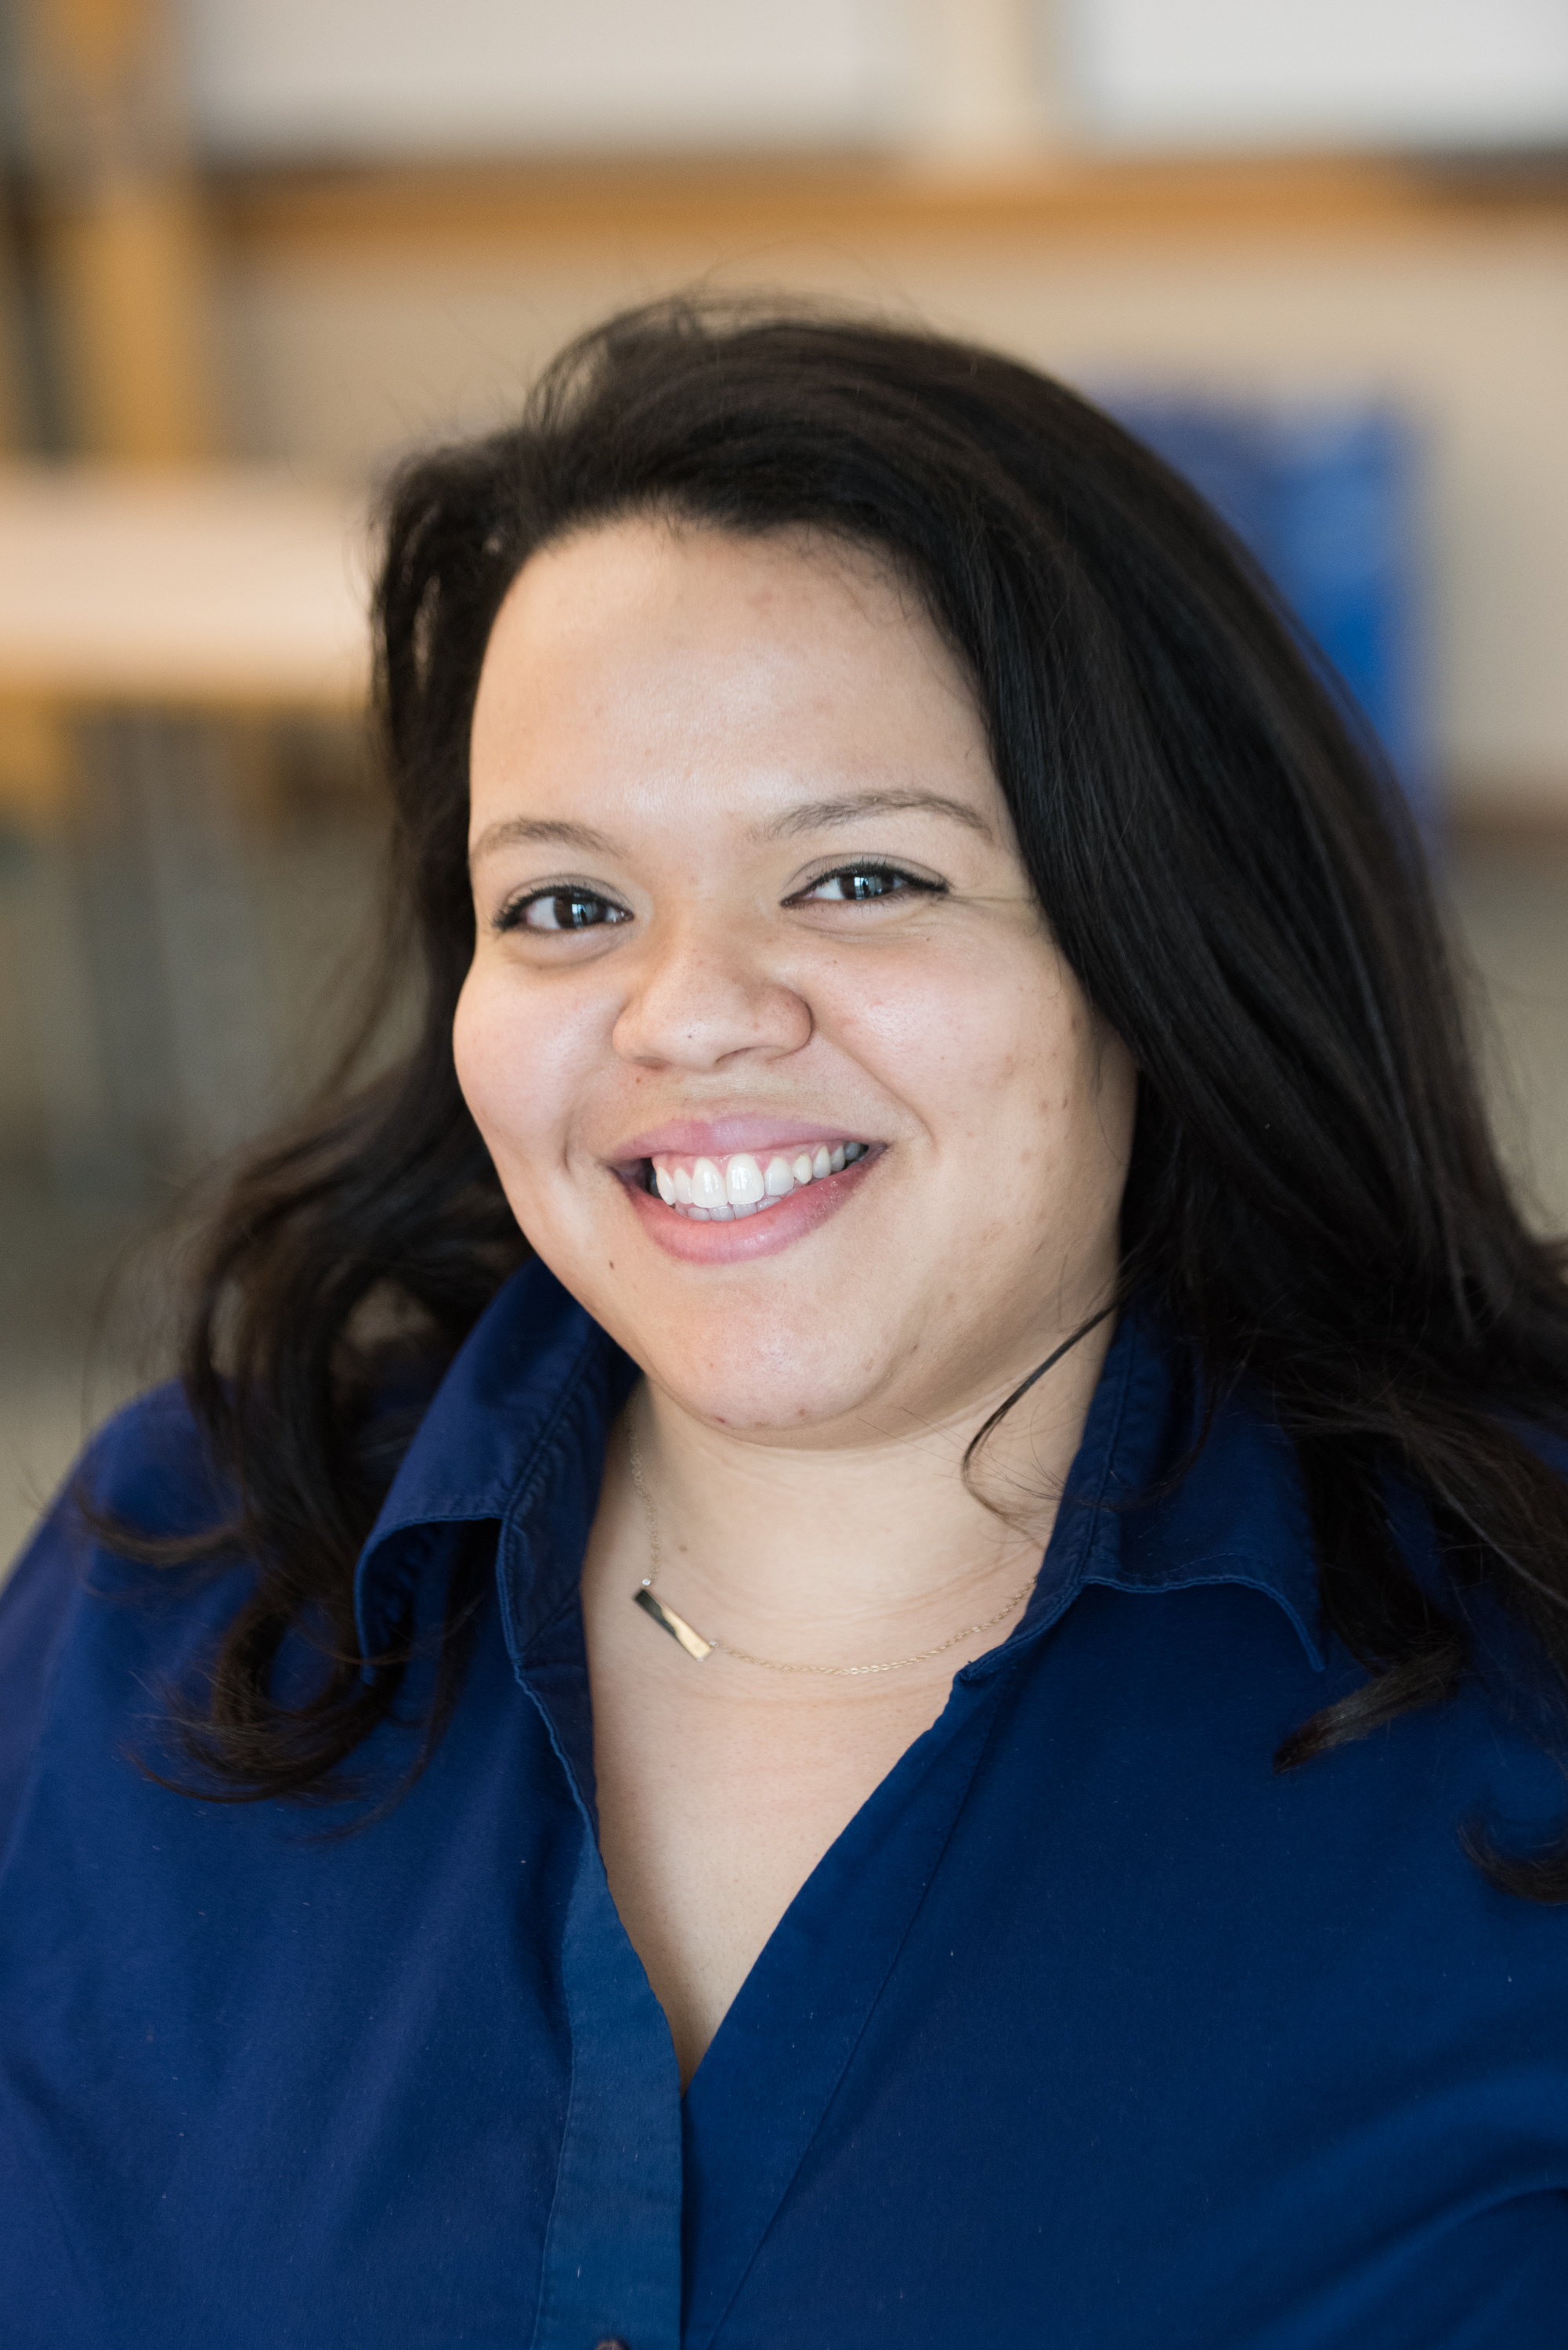 Mabel Rodriguez - Director of High School Programs, Placement, and Alumni Relations and Interim Curriculum Director at Summer on the Hill